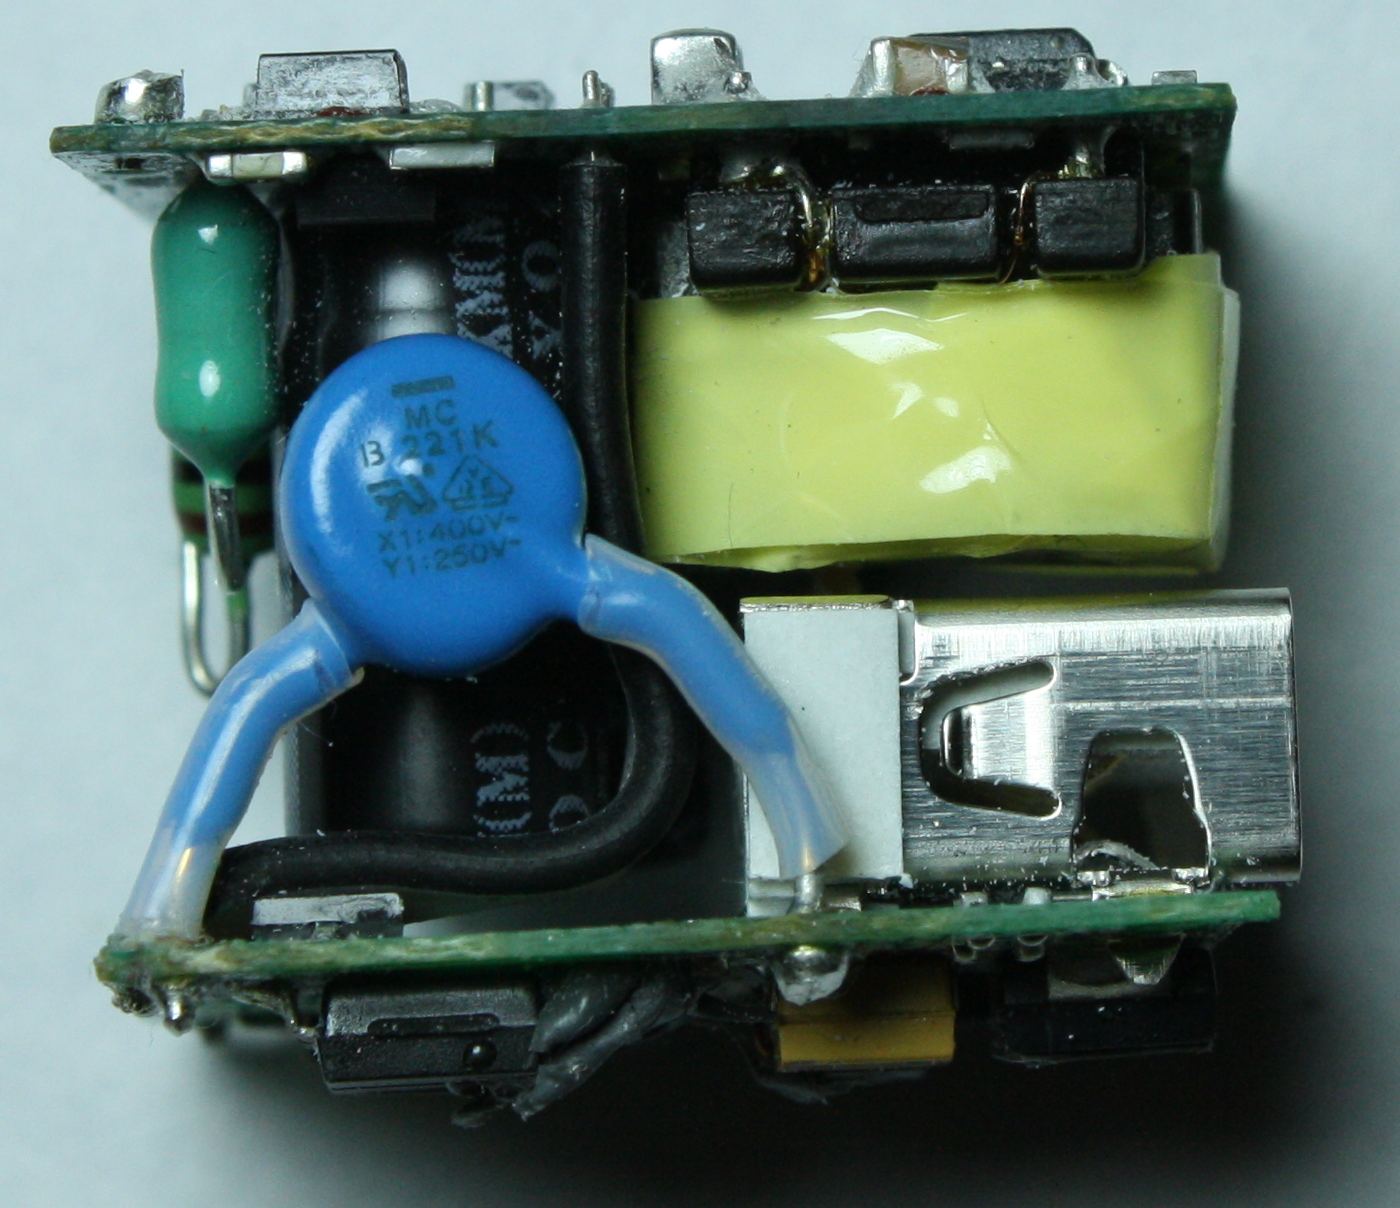 Apple Iphone Charger Teardown Quality In A Tiny Expensive Package Usb Controller Schematic Inside The Input Inductor Green Y Capacitor Blue